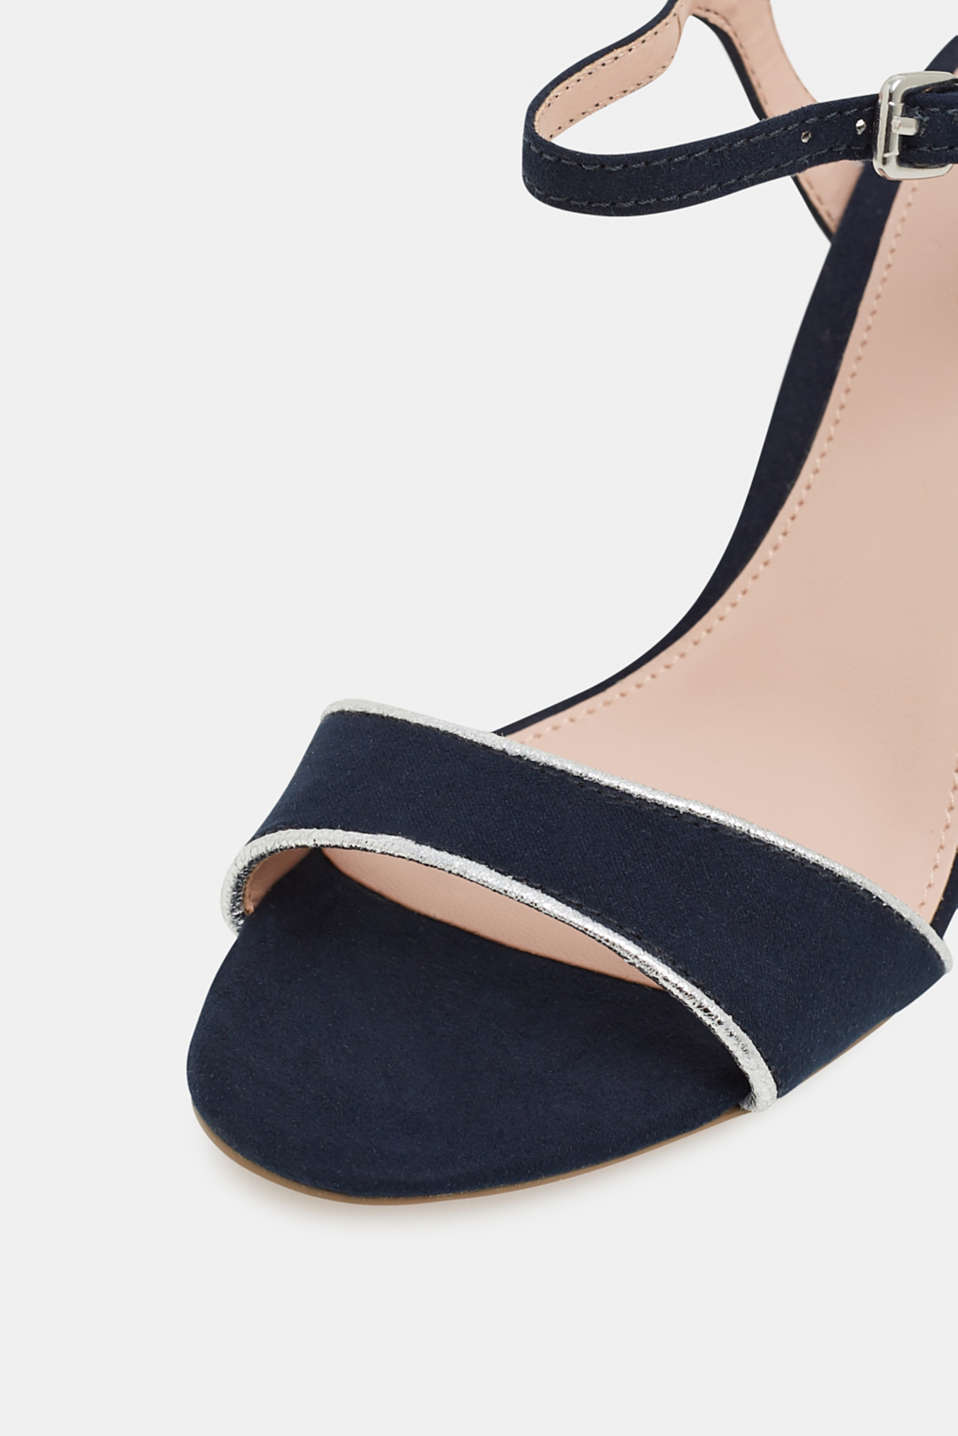 Suede sandals with metallic accents, NAVY 5, detail image number 4